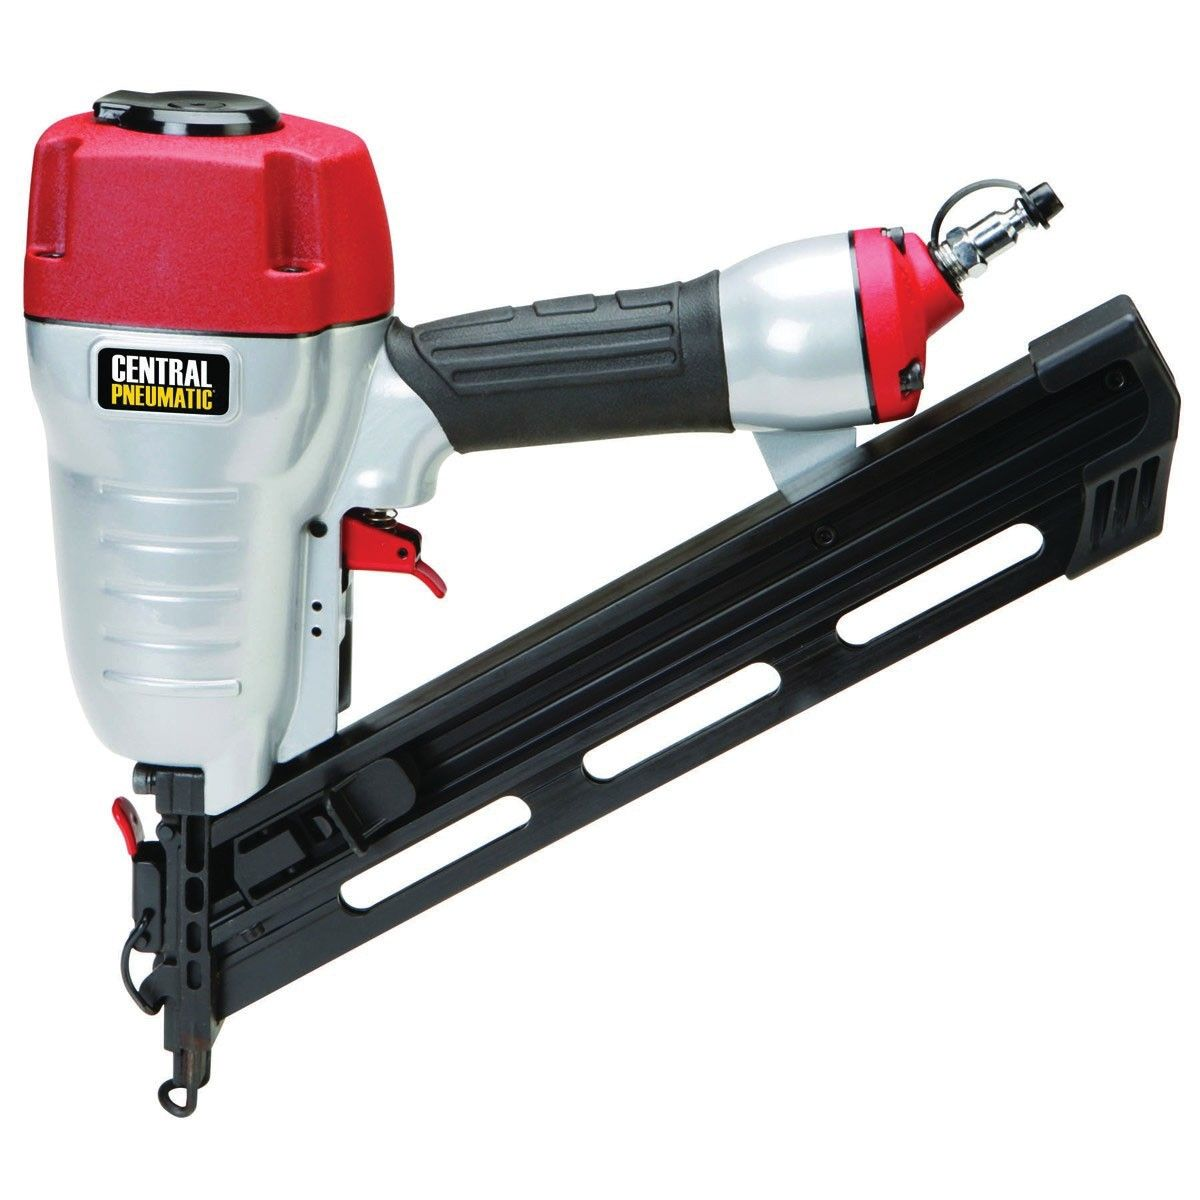 34 Angle Finish Air Nailer Finish Nailer Air Nailer Nailer